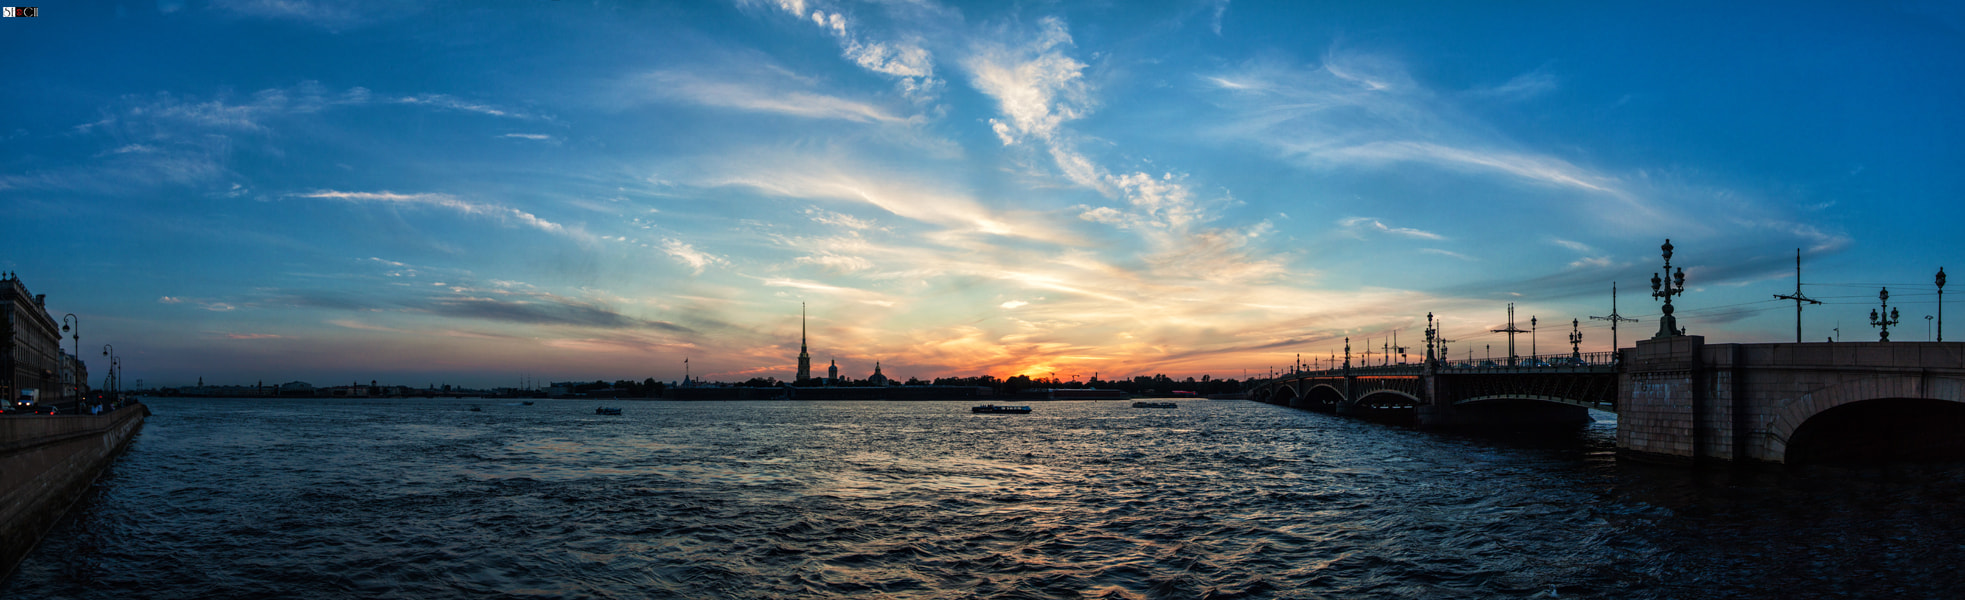 Photograph Sunset over St. Petersburg by Sergey SE®CH on 500px